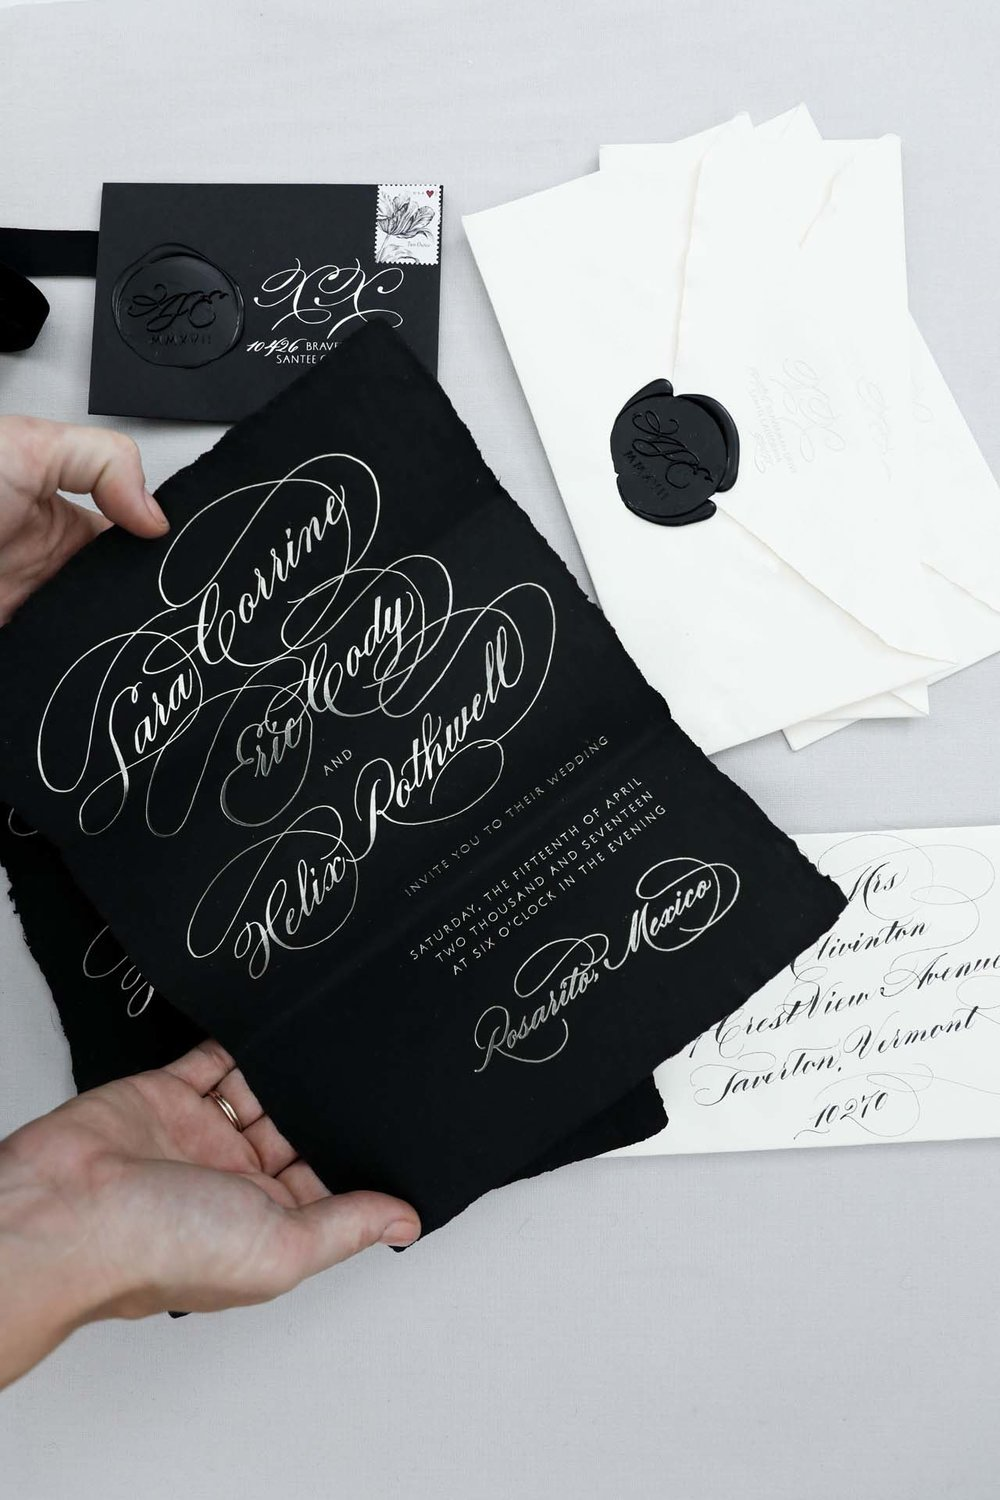 Design House of Moira | Foil & Watercolor | Flourished Calligraphy | Handmade Paper